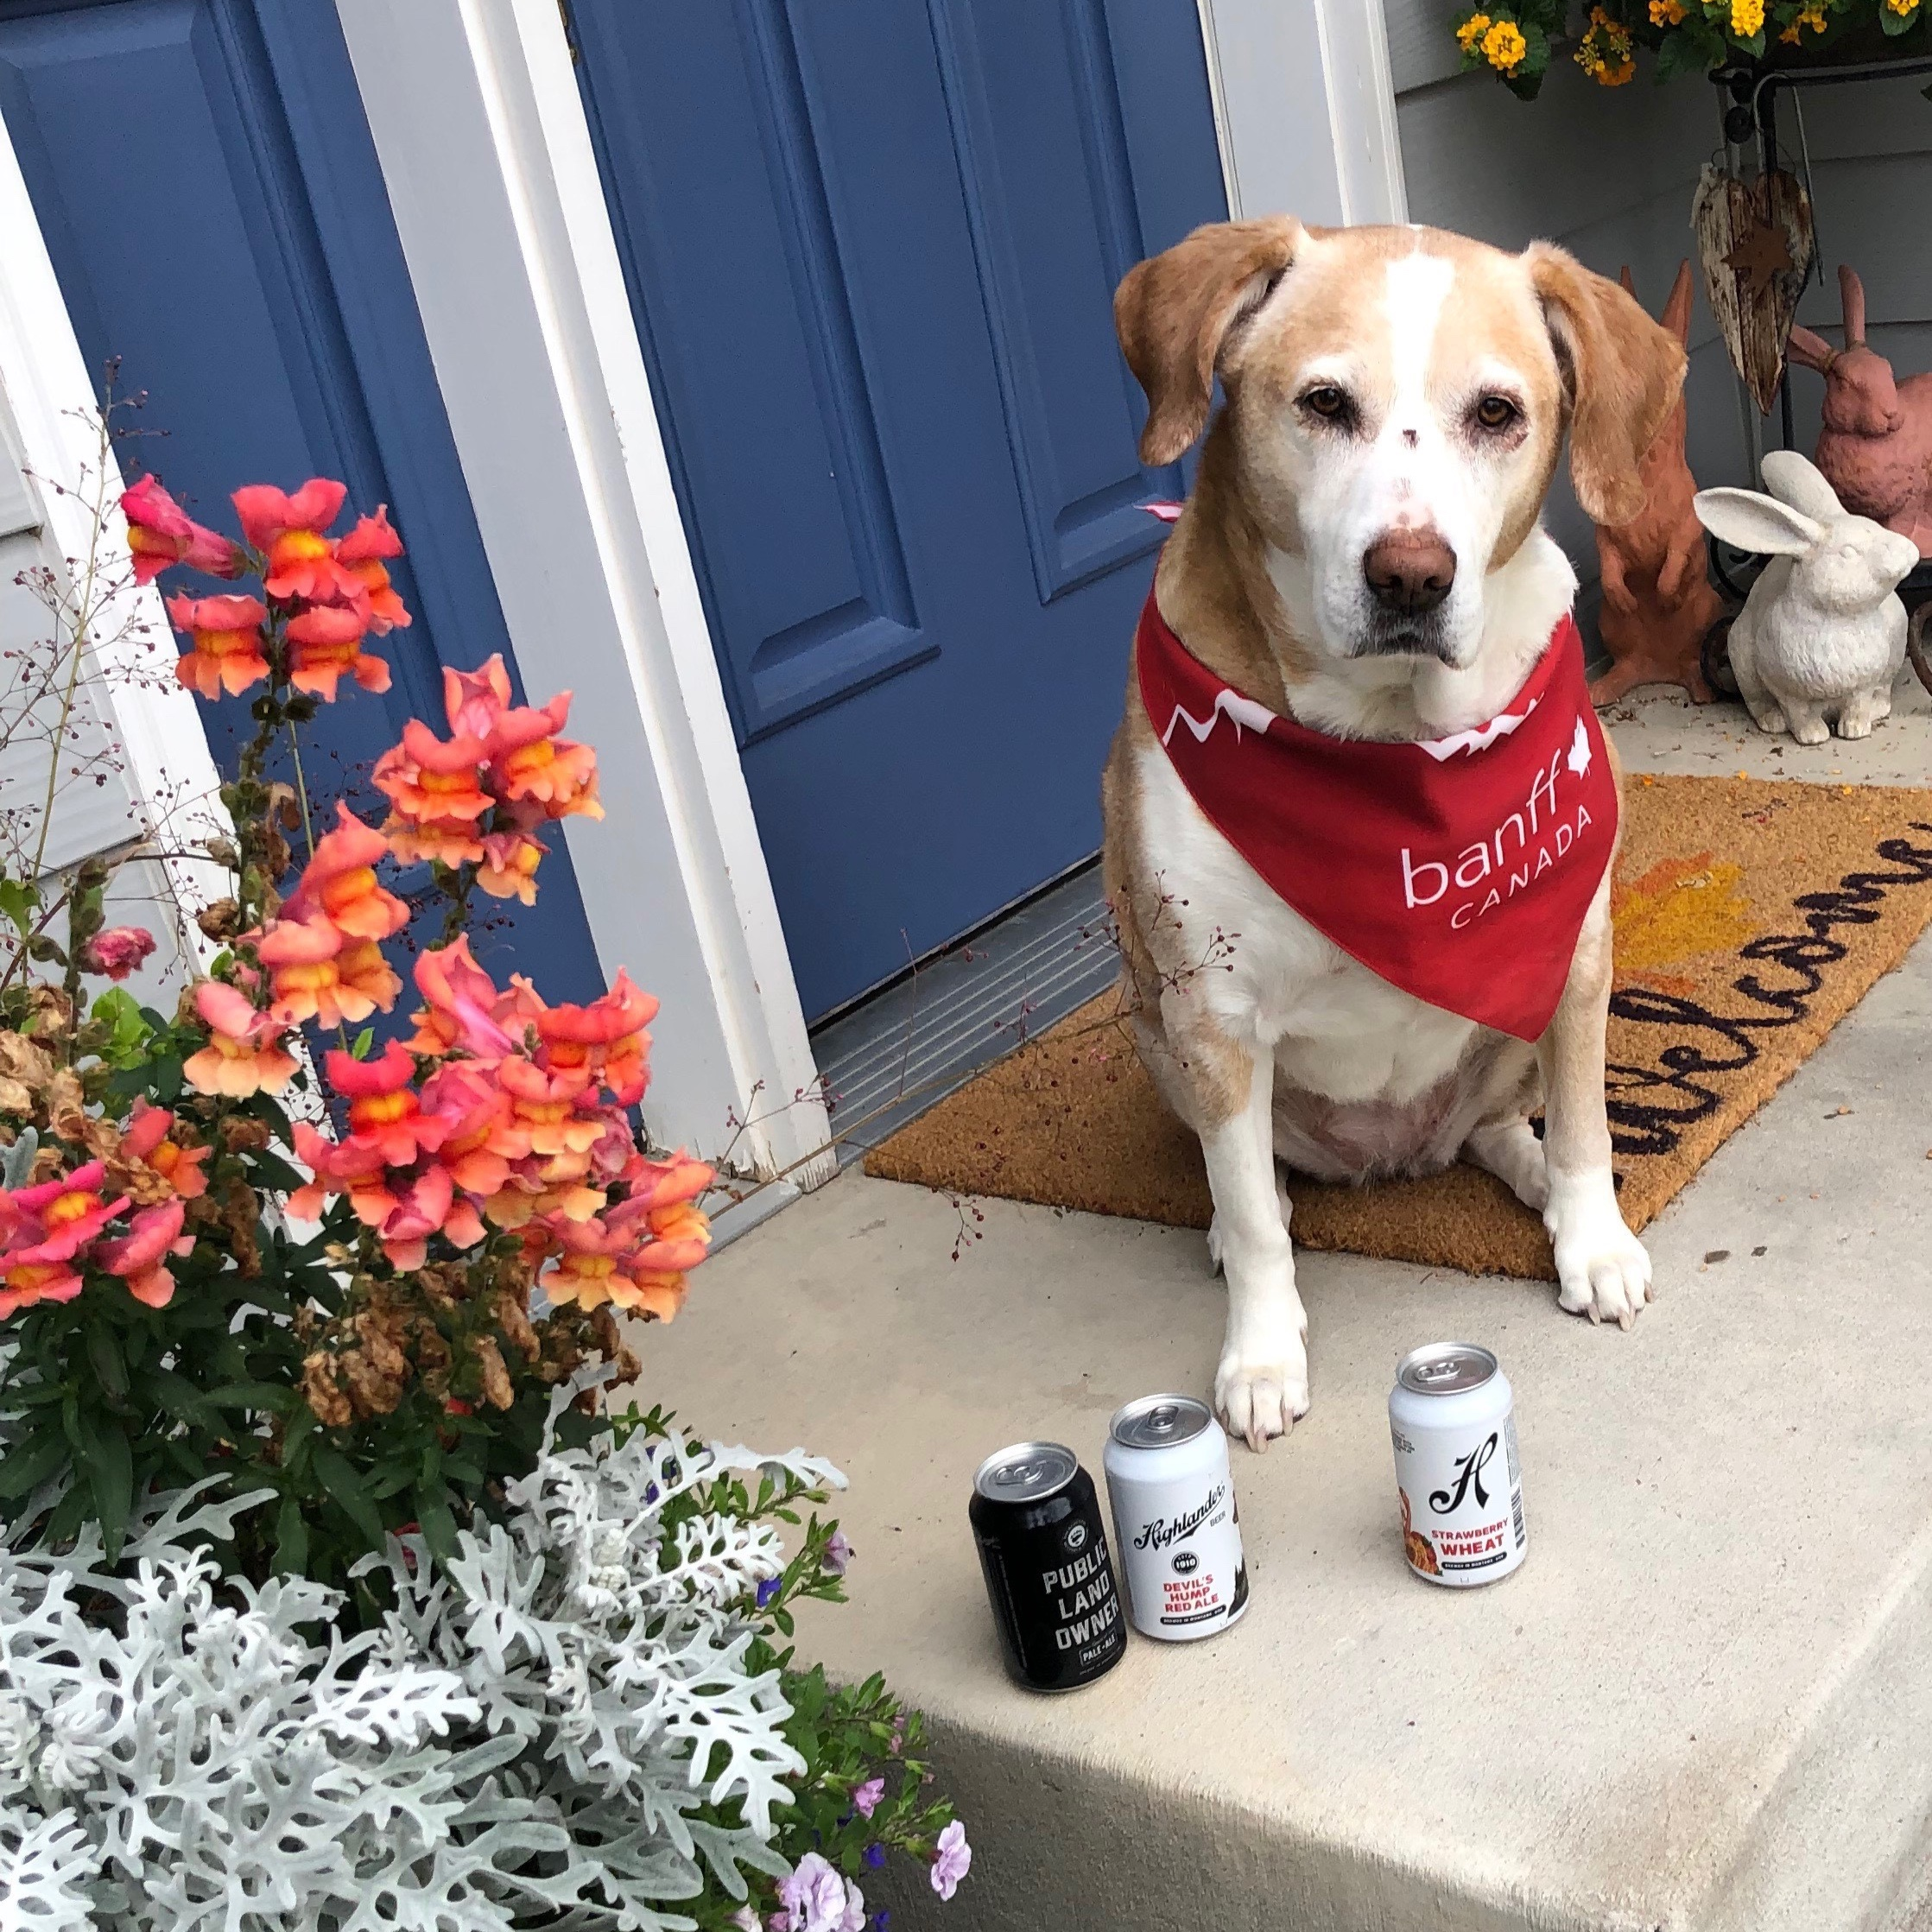 Holly - Cory's family got Holly for Christmas when he was 13 and even though she's an old girl now, she lights up like a puppy when he comes home! She is a big fan of Highlander's new cans and her favorites are the Public Land Owner, Devil's Hump and the Strawberry Wheat!